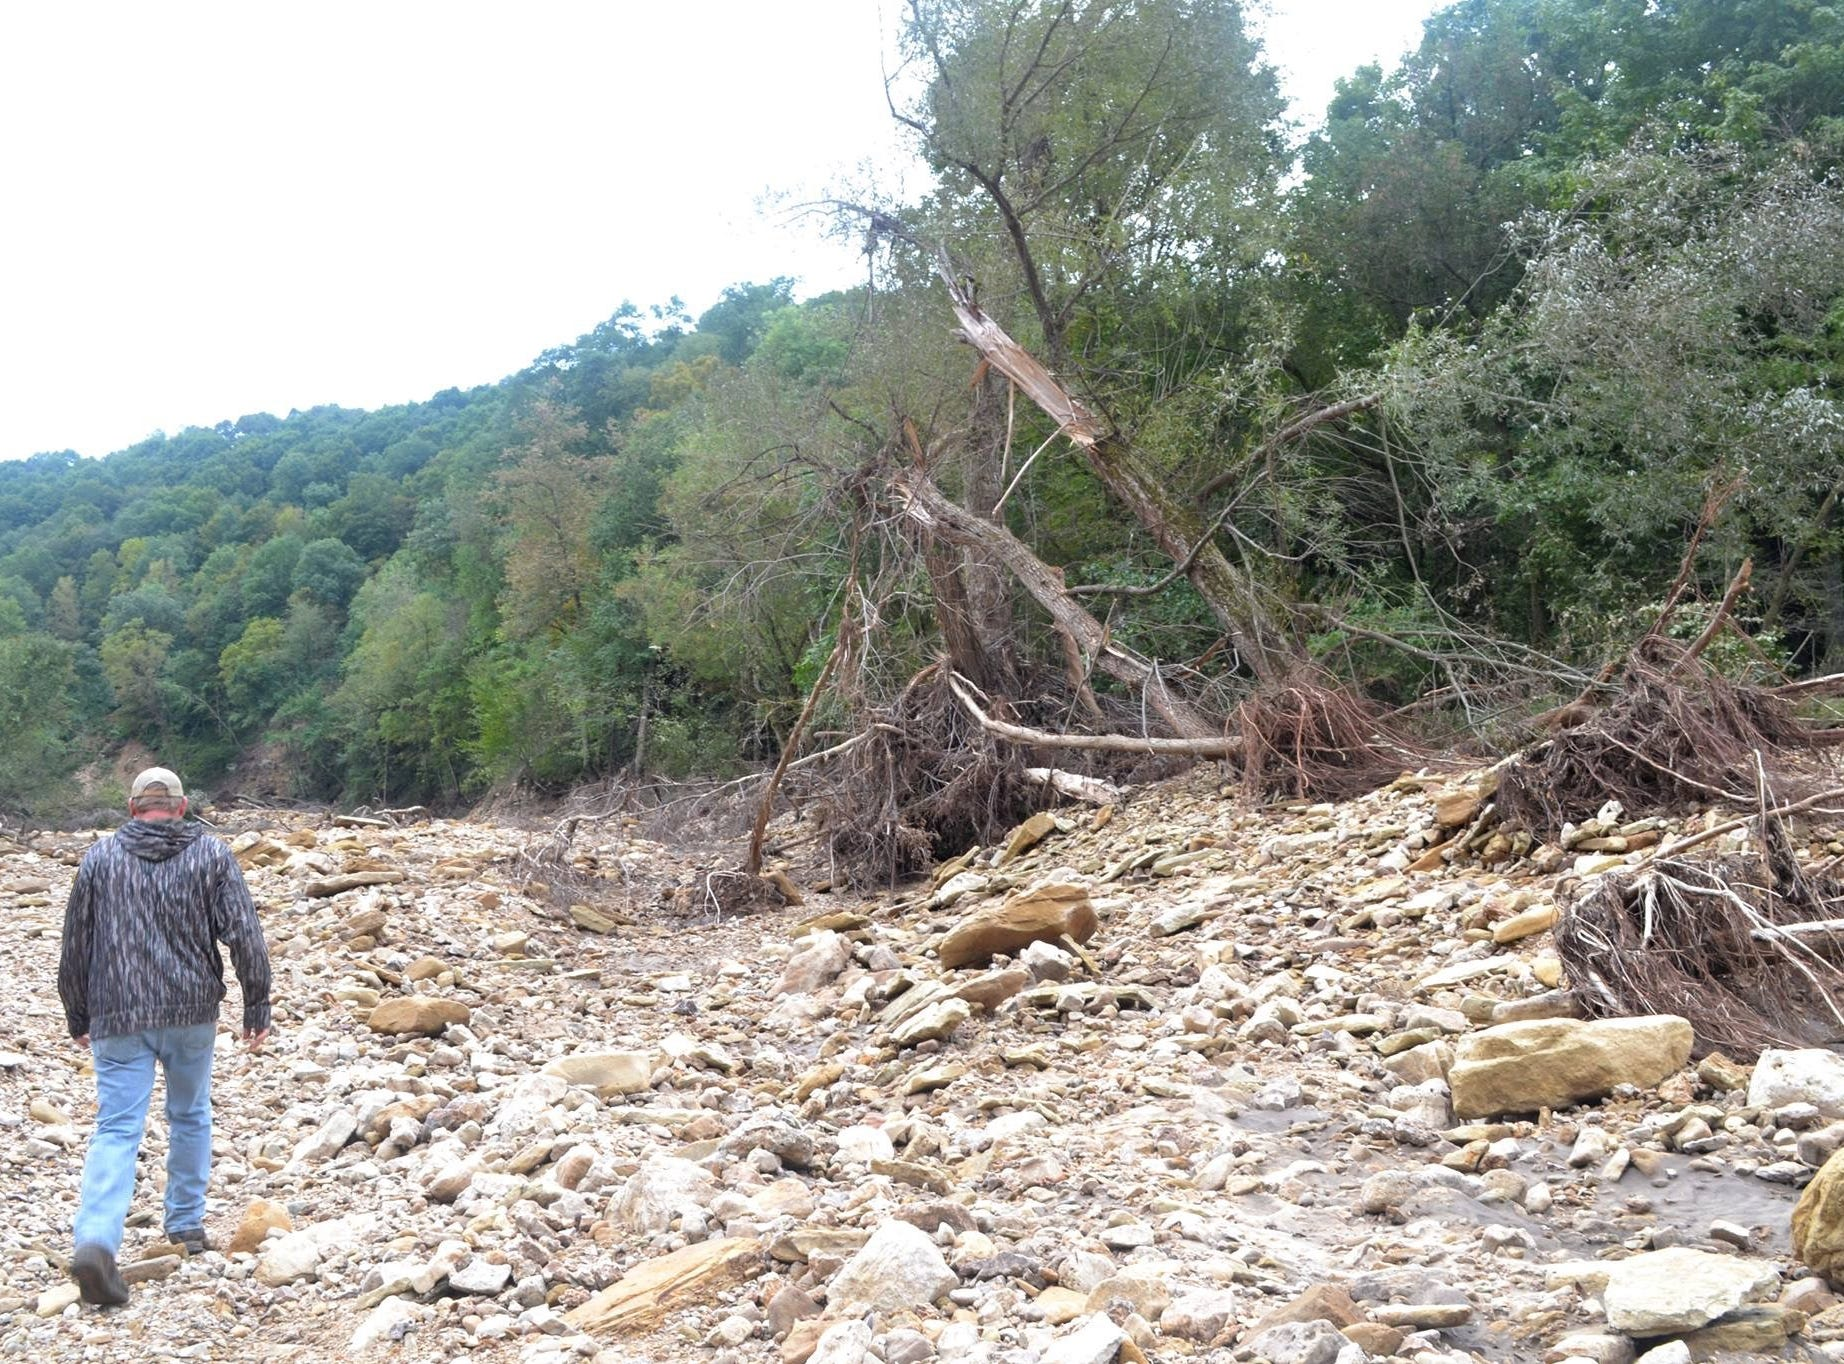 Miles of debris in the wake of the earthen dam breach litter the once verdant valley.